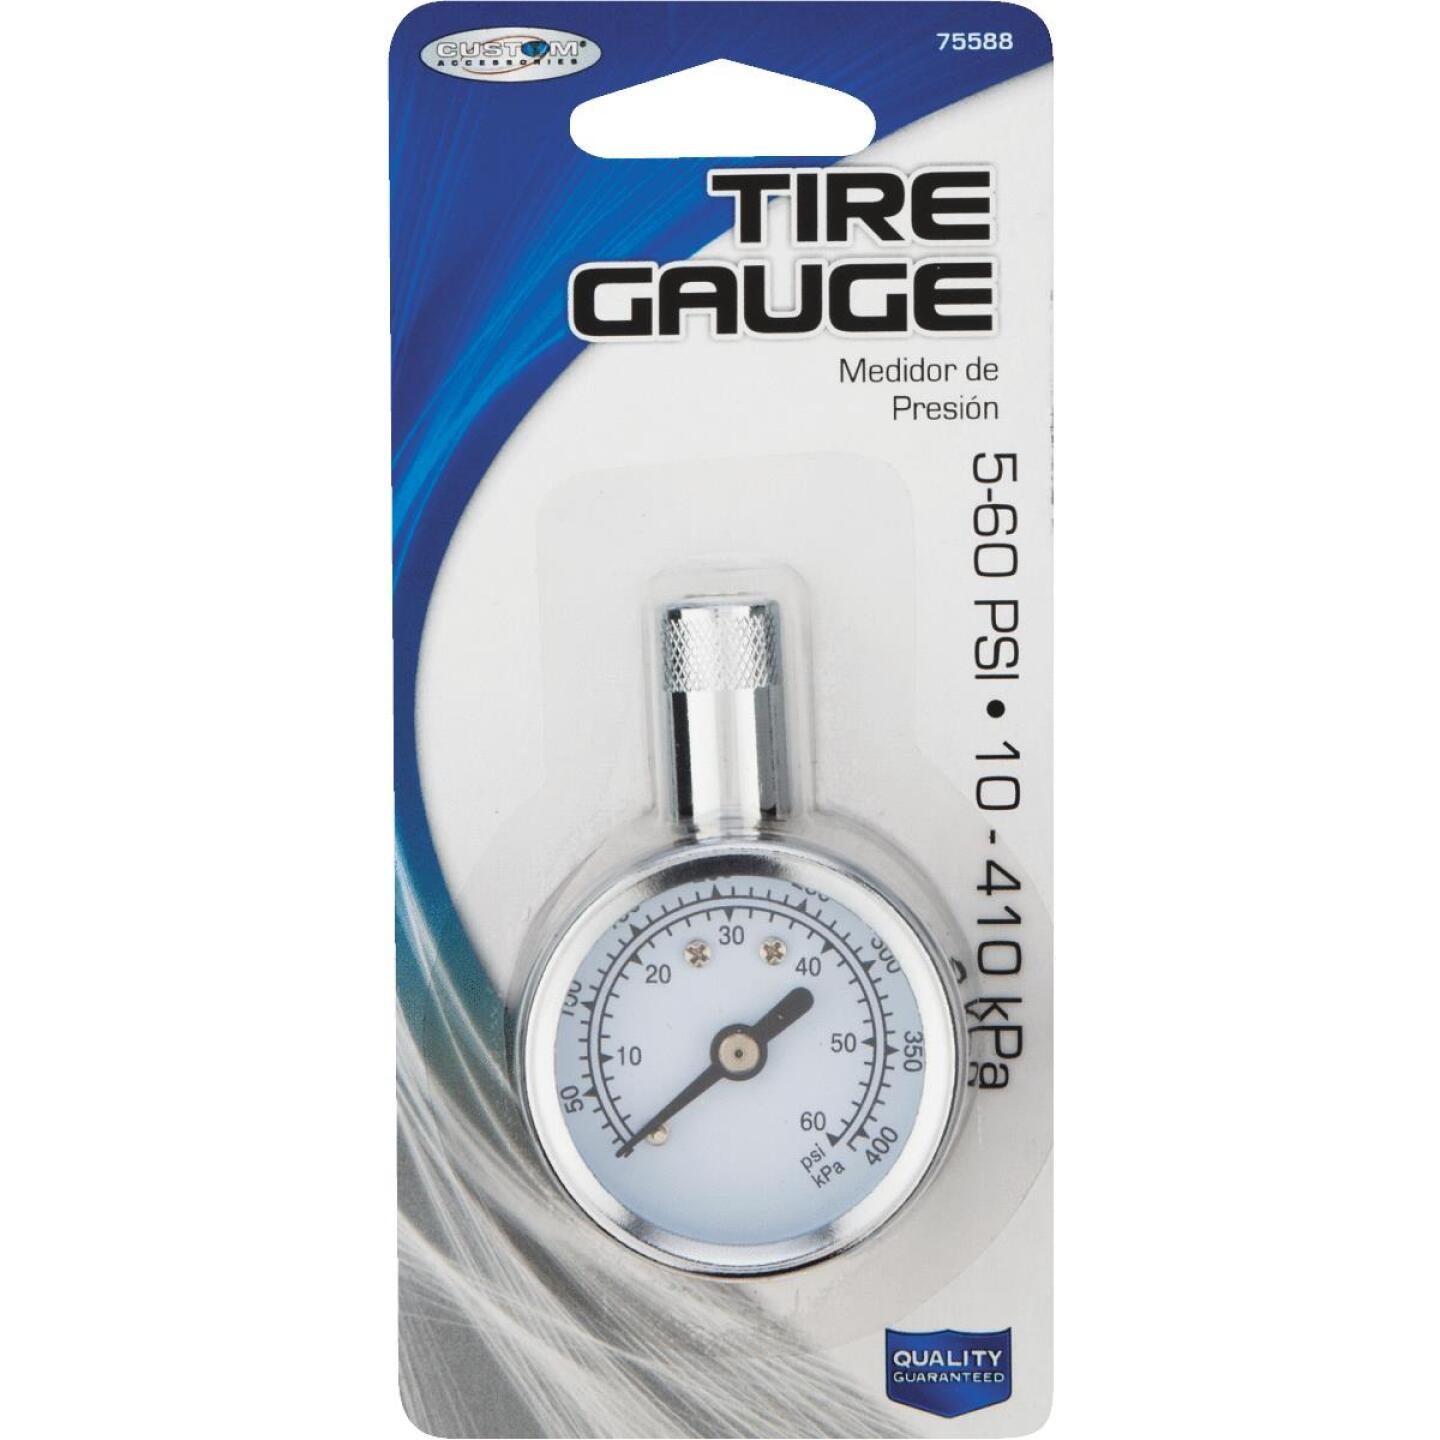 Custom Accessories 5-60 Psi Chrome-plated Tire Gauge Image 2